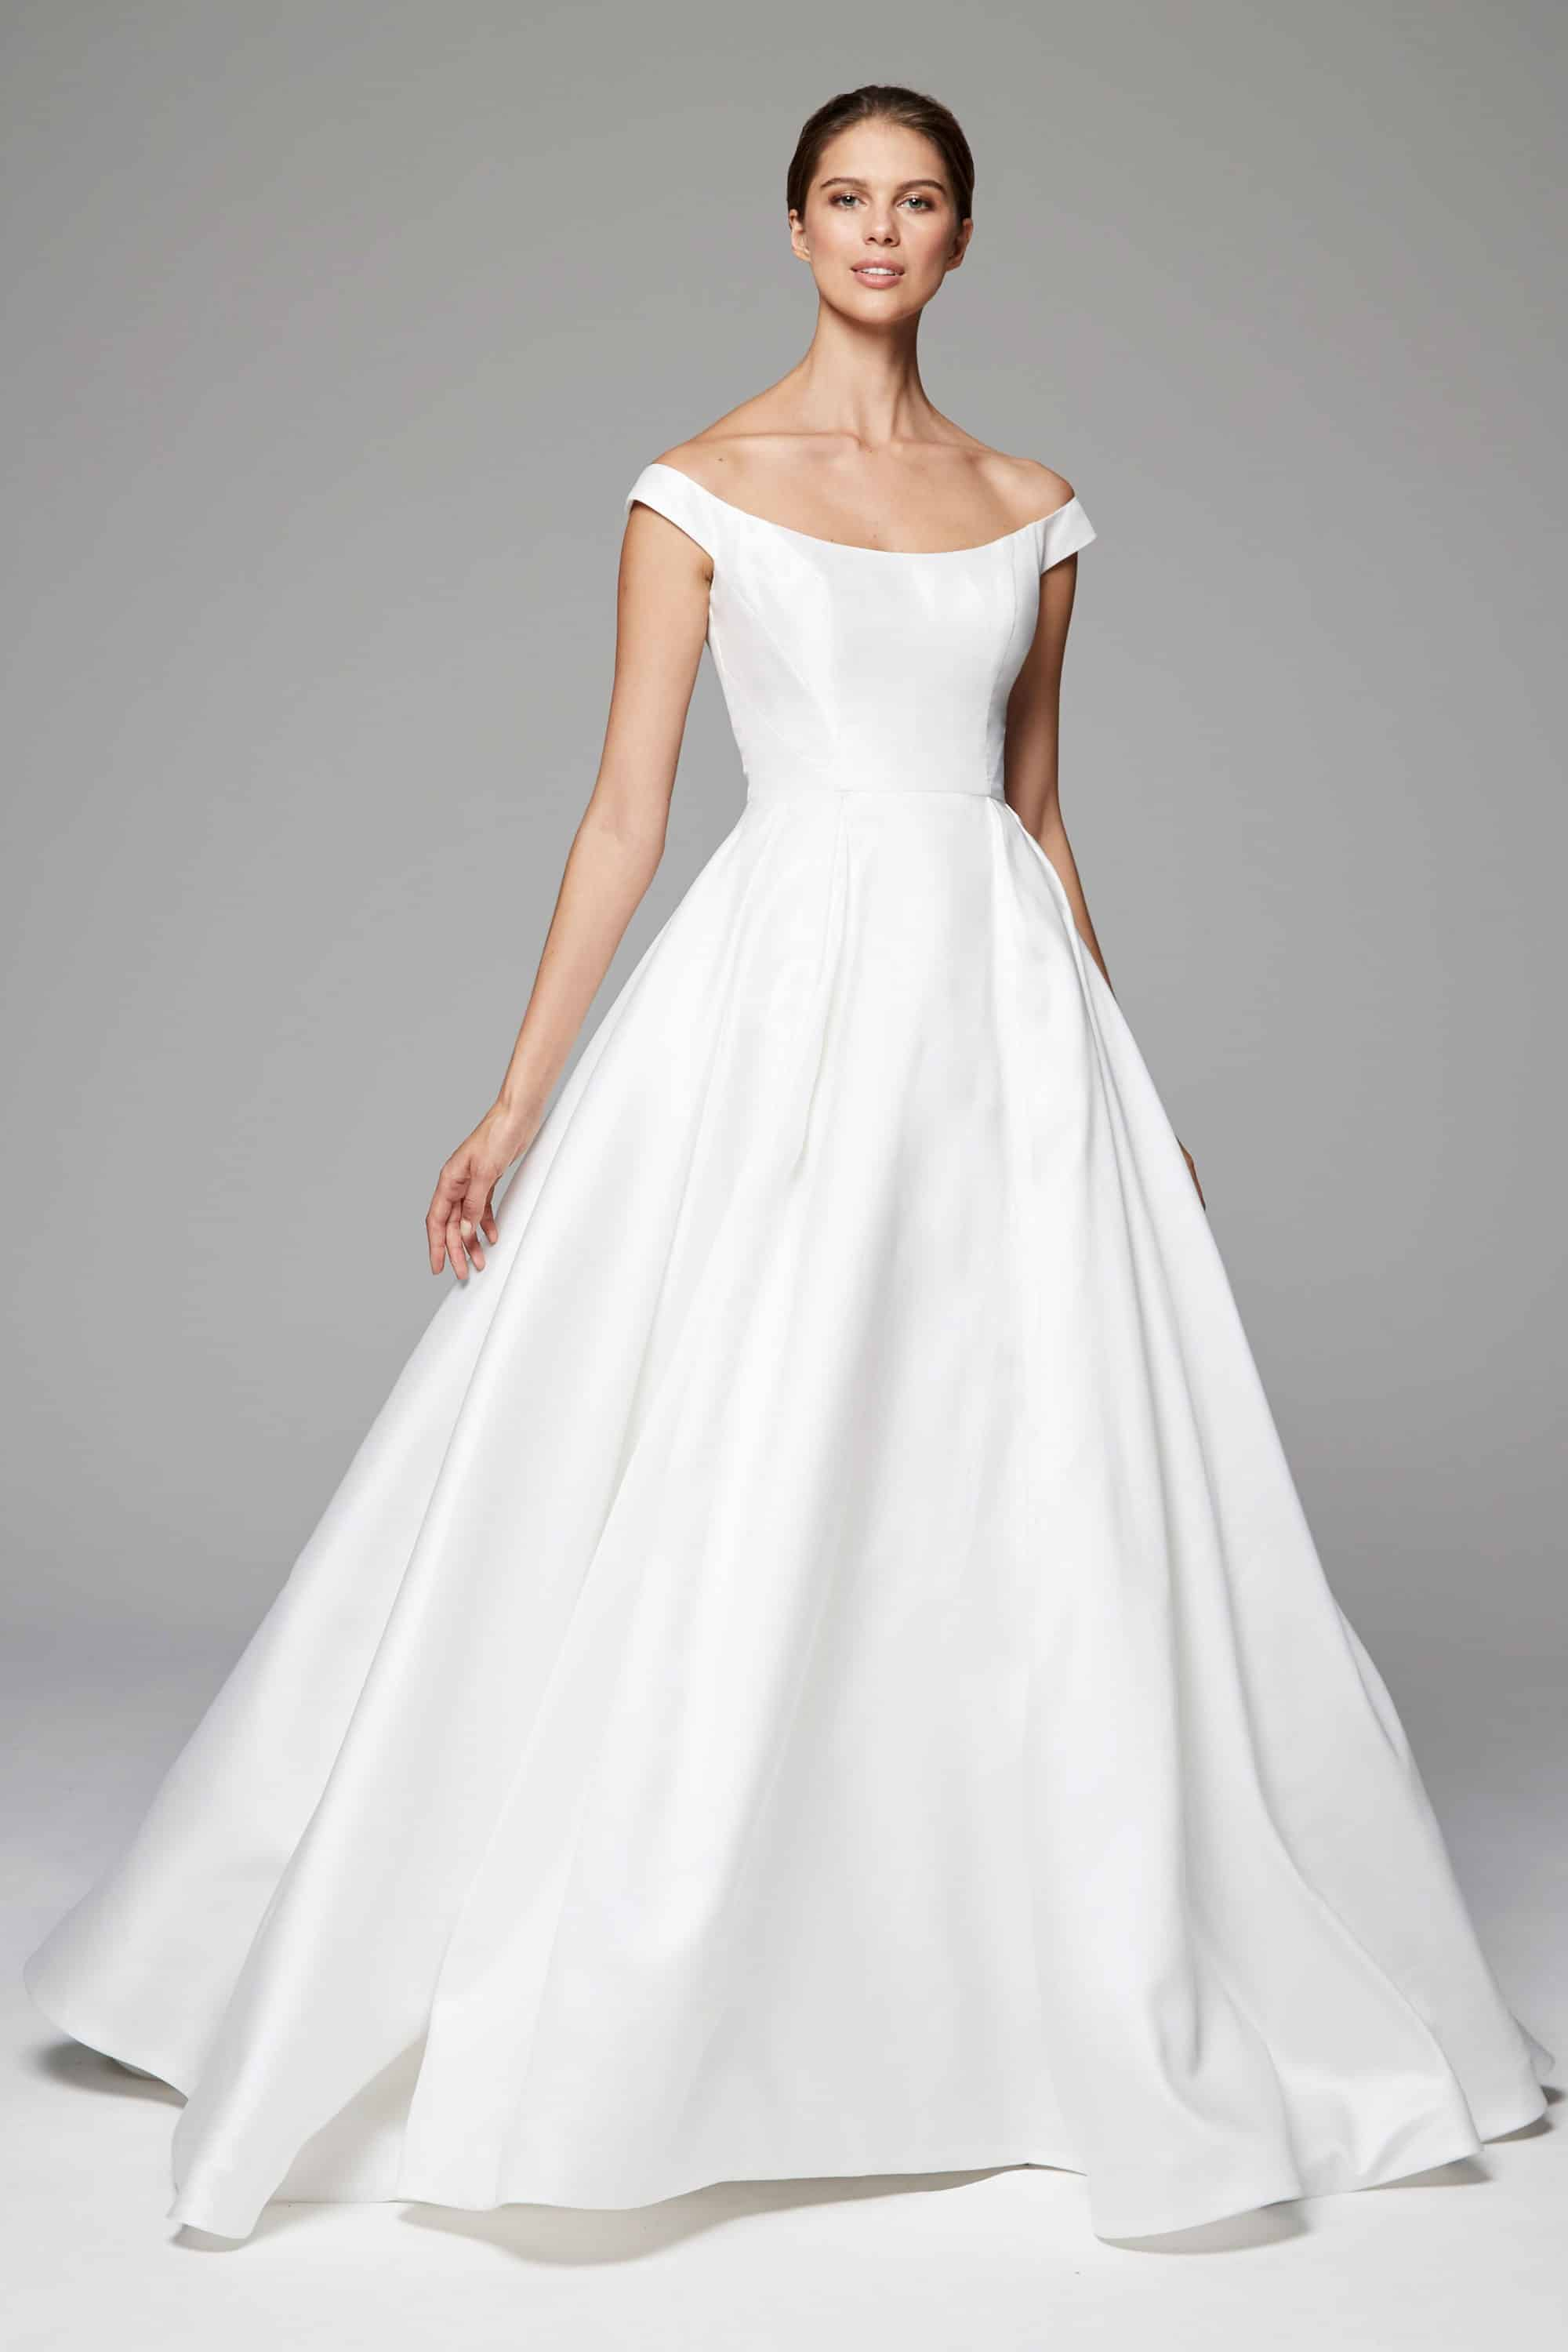 b136f731e79 One of the most important decisions that a bride will make about her wedding  is her choice of a wedding dress. On the big day